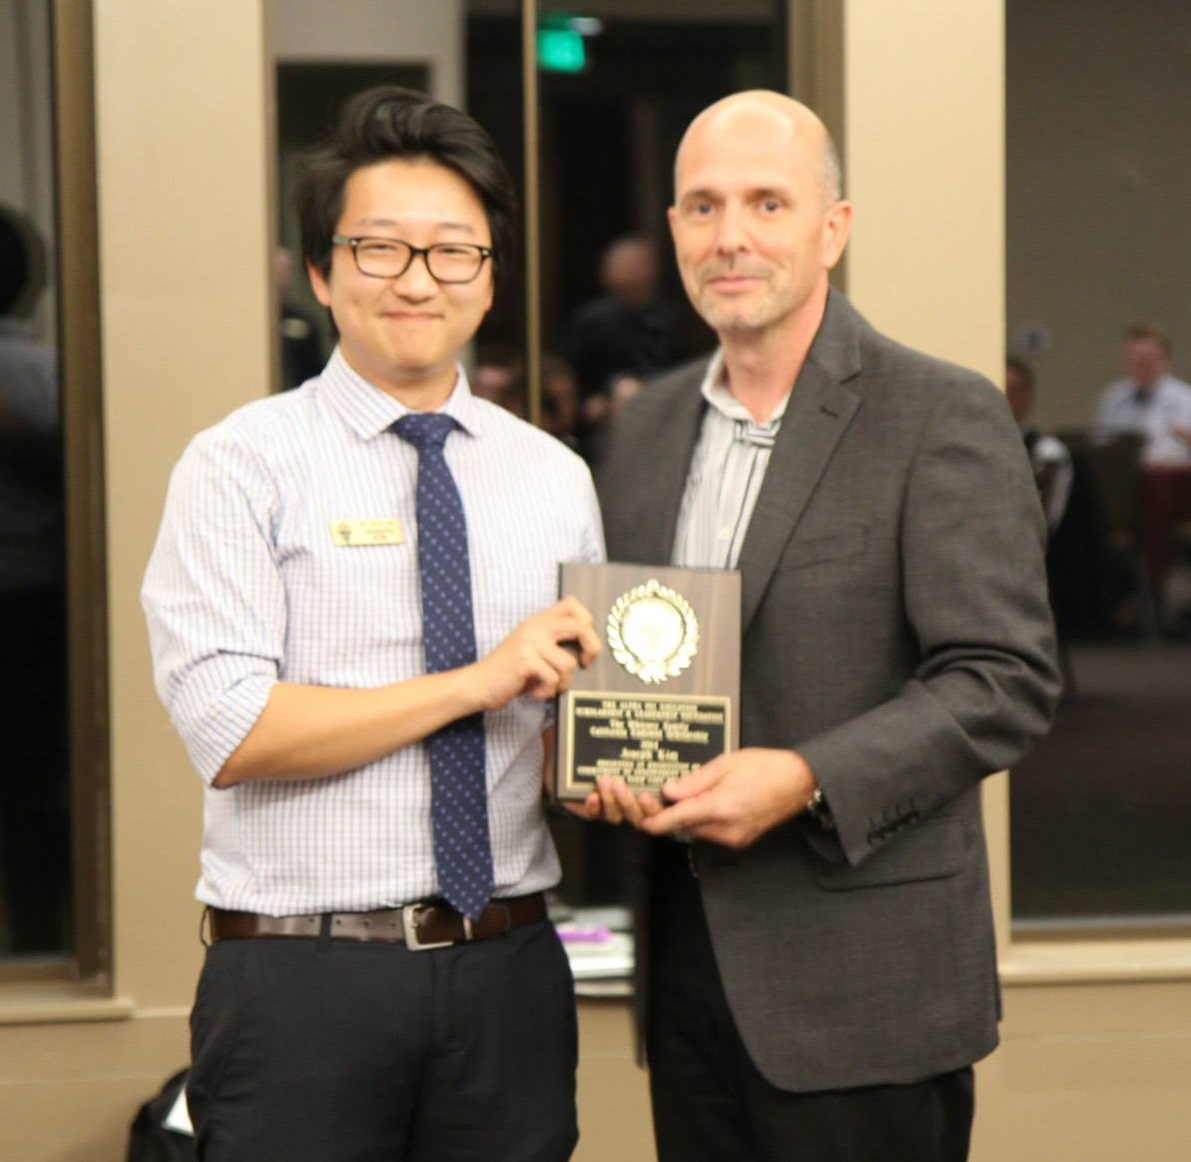 Joseph Kim, 1st recipient of the Whitney Family Endowed California Scholarship 2014, presented by Gary DeGuire